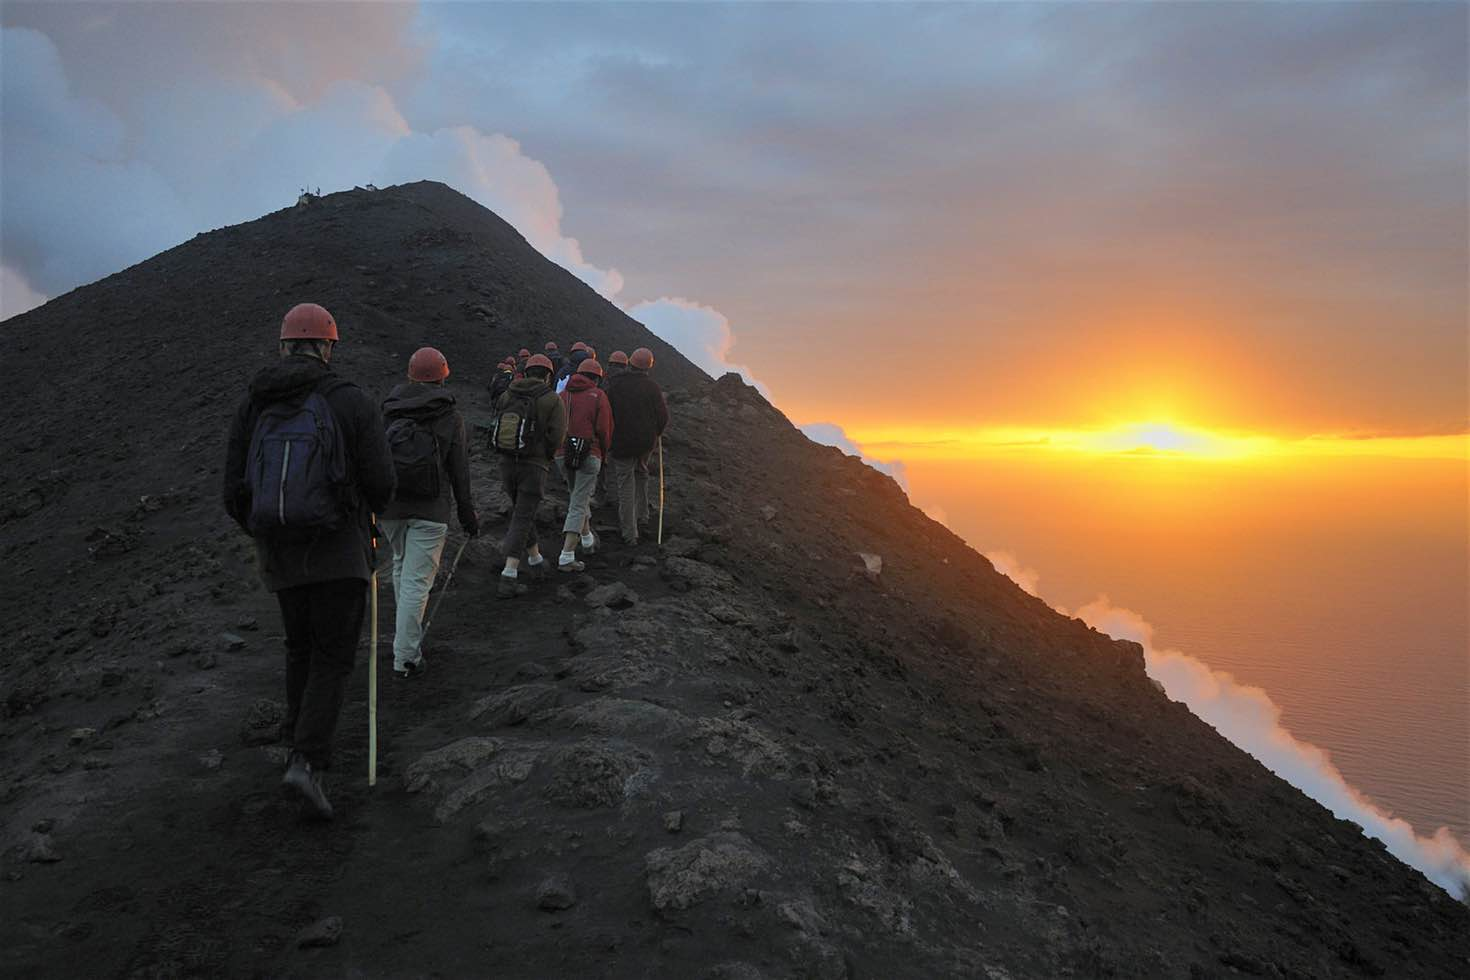 Hiking up Stromboli's black volcanic cone at sunset